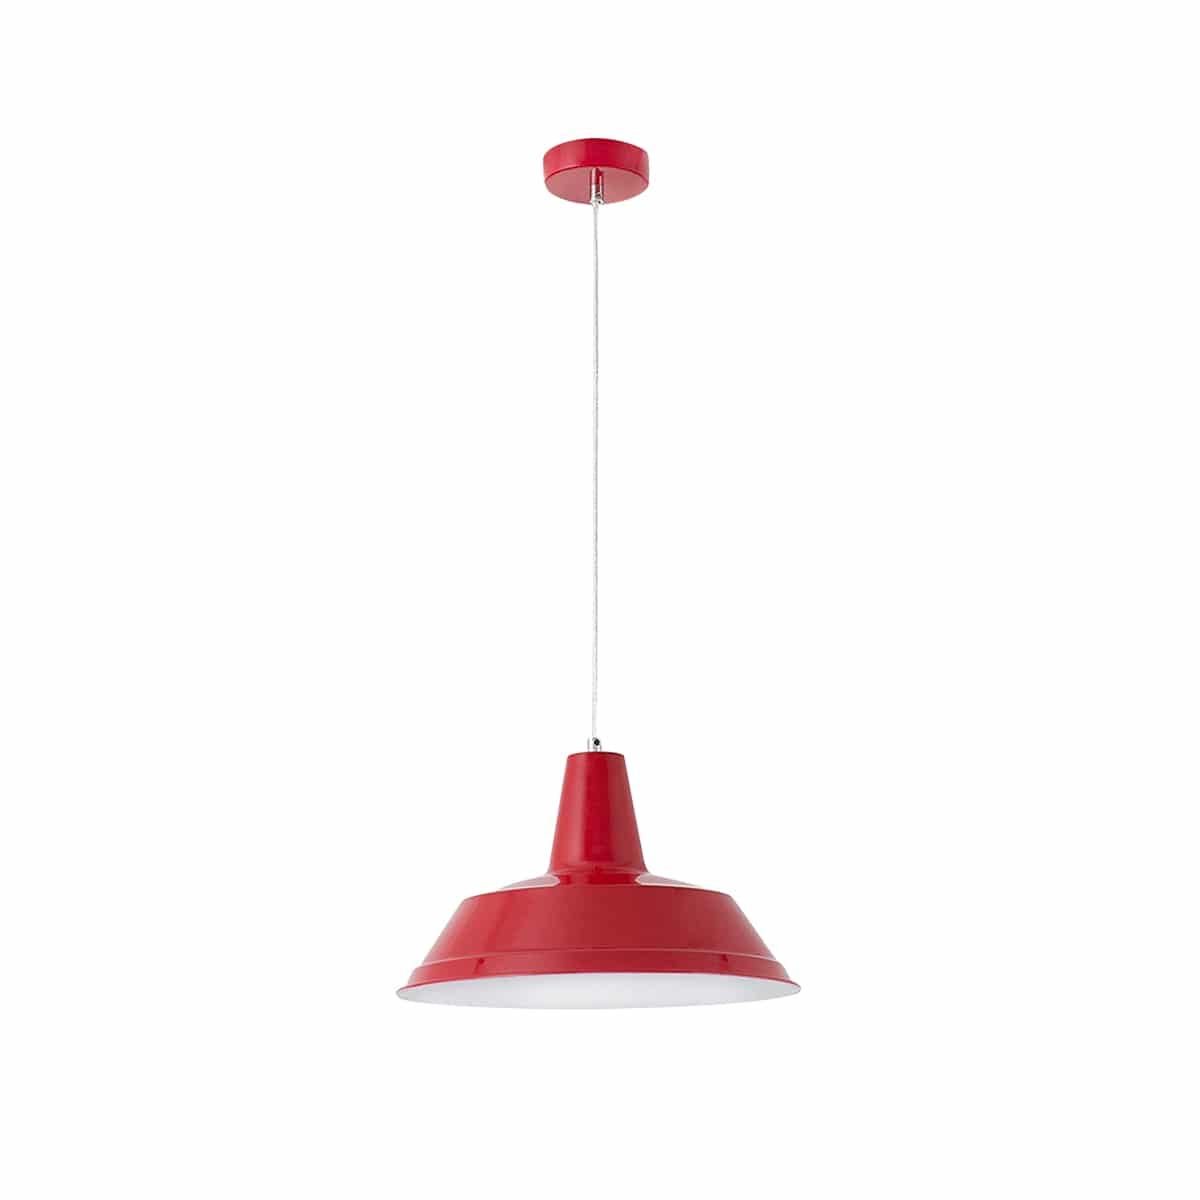 Suspension Alais rouge Faro Barcelona zeeloft